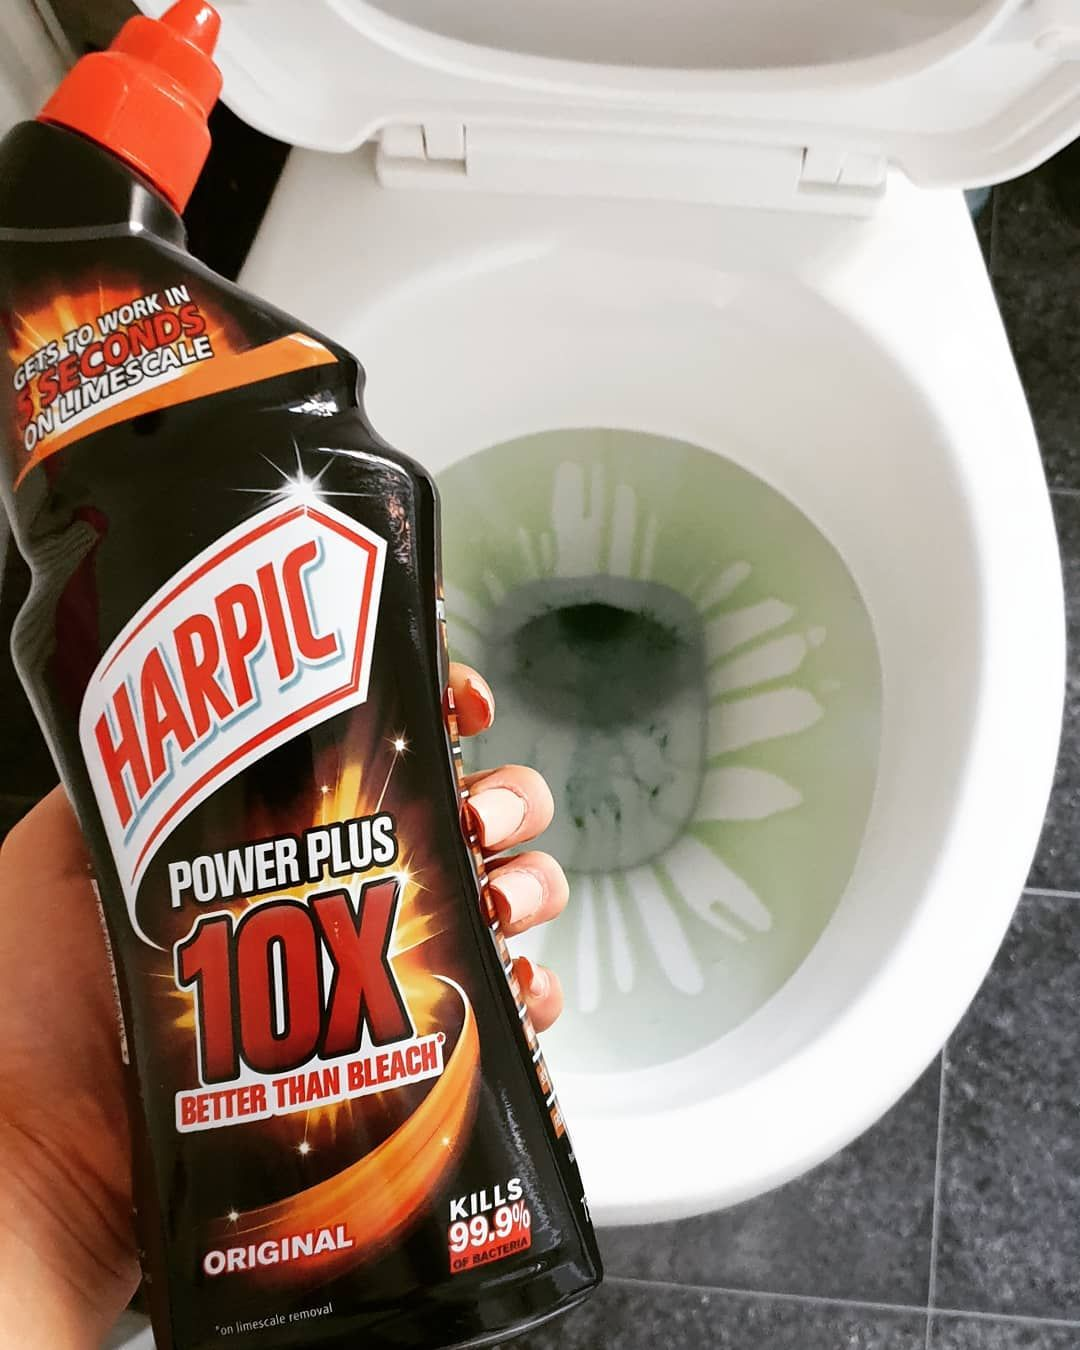 Toilet Tuesday Harpic Hinched Hinch Hinching Cleaning Cleaningcommunity Cleanhomecleanmind Cleaningproducts Clean Harpic Cleaning Toilet